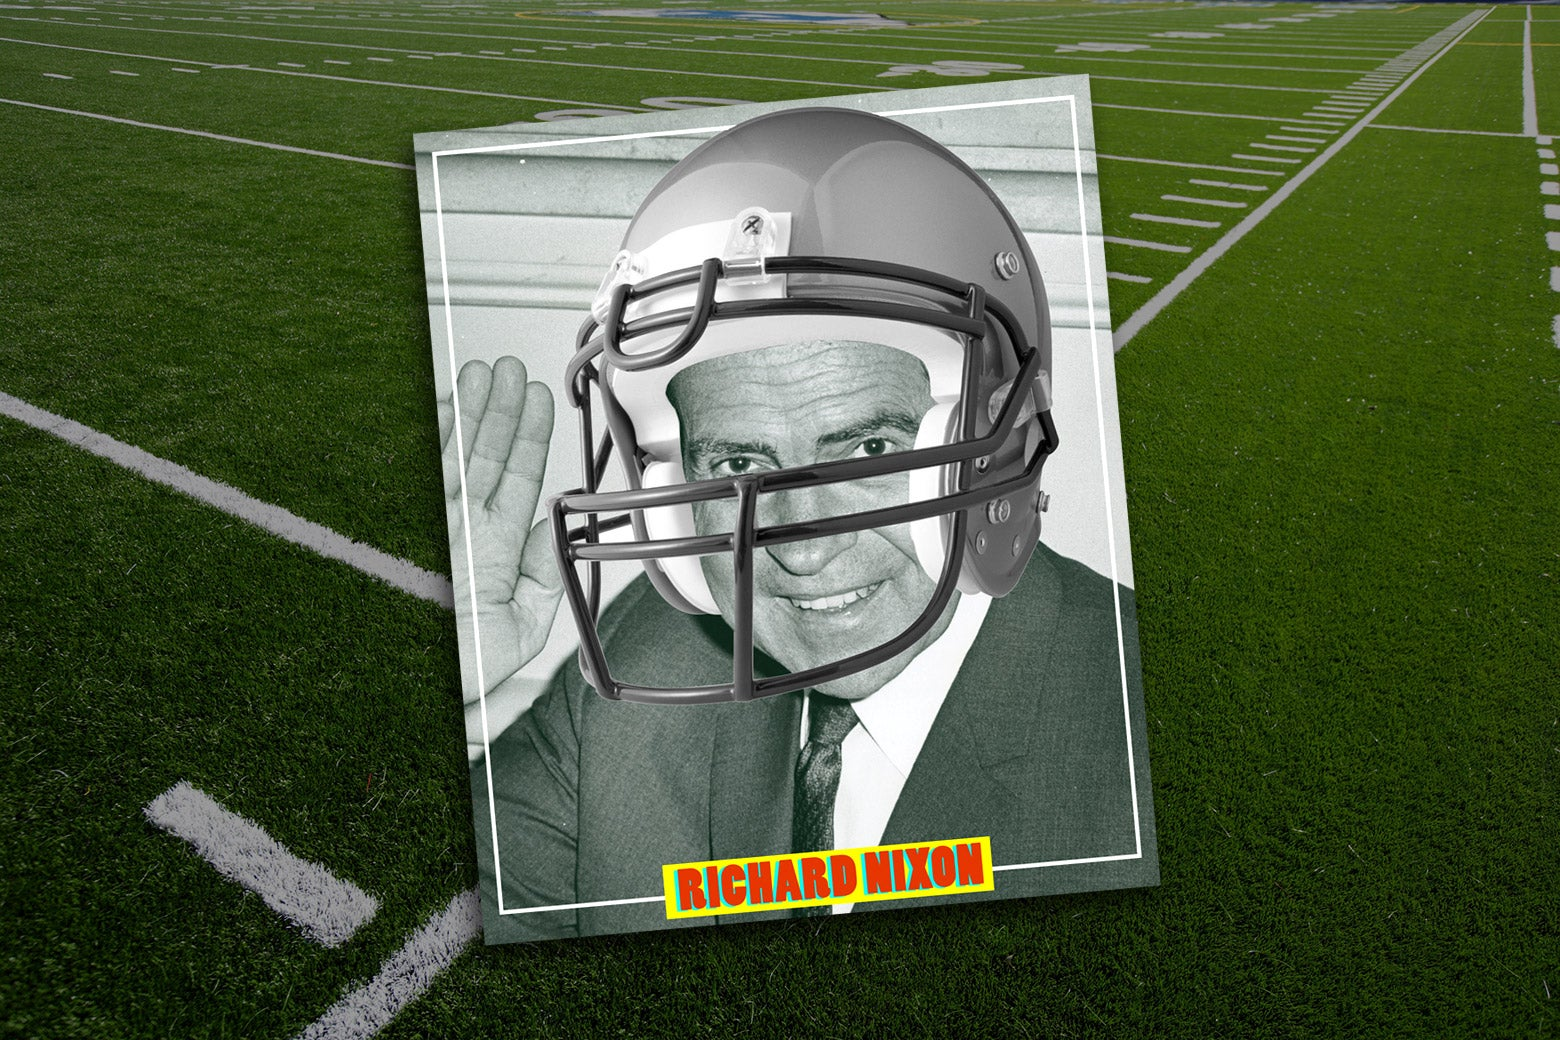 Photo illustration: A photo of Nixon with a football helmet digitally in a border like a baseball trading card. The image is set against the background of a football field.